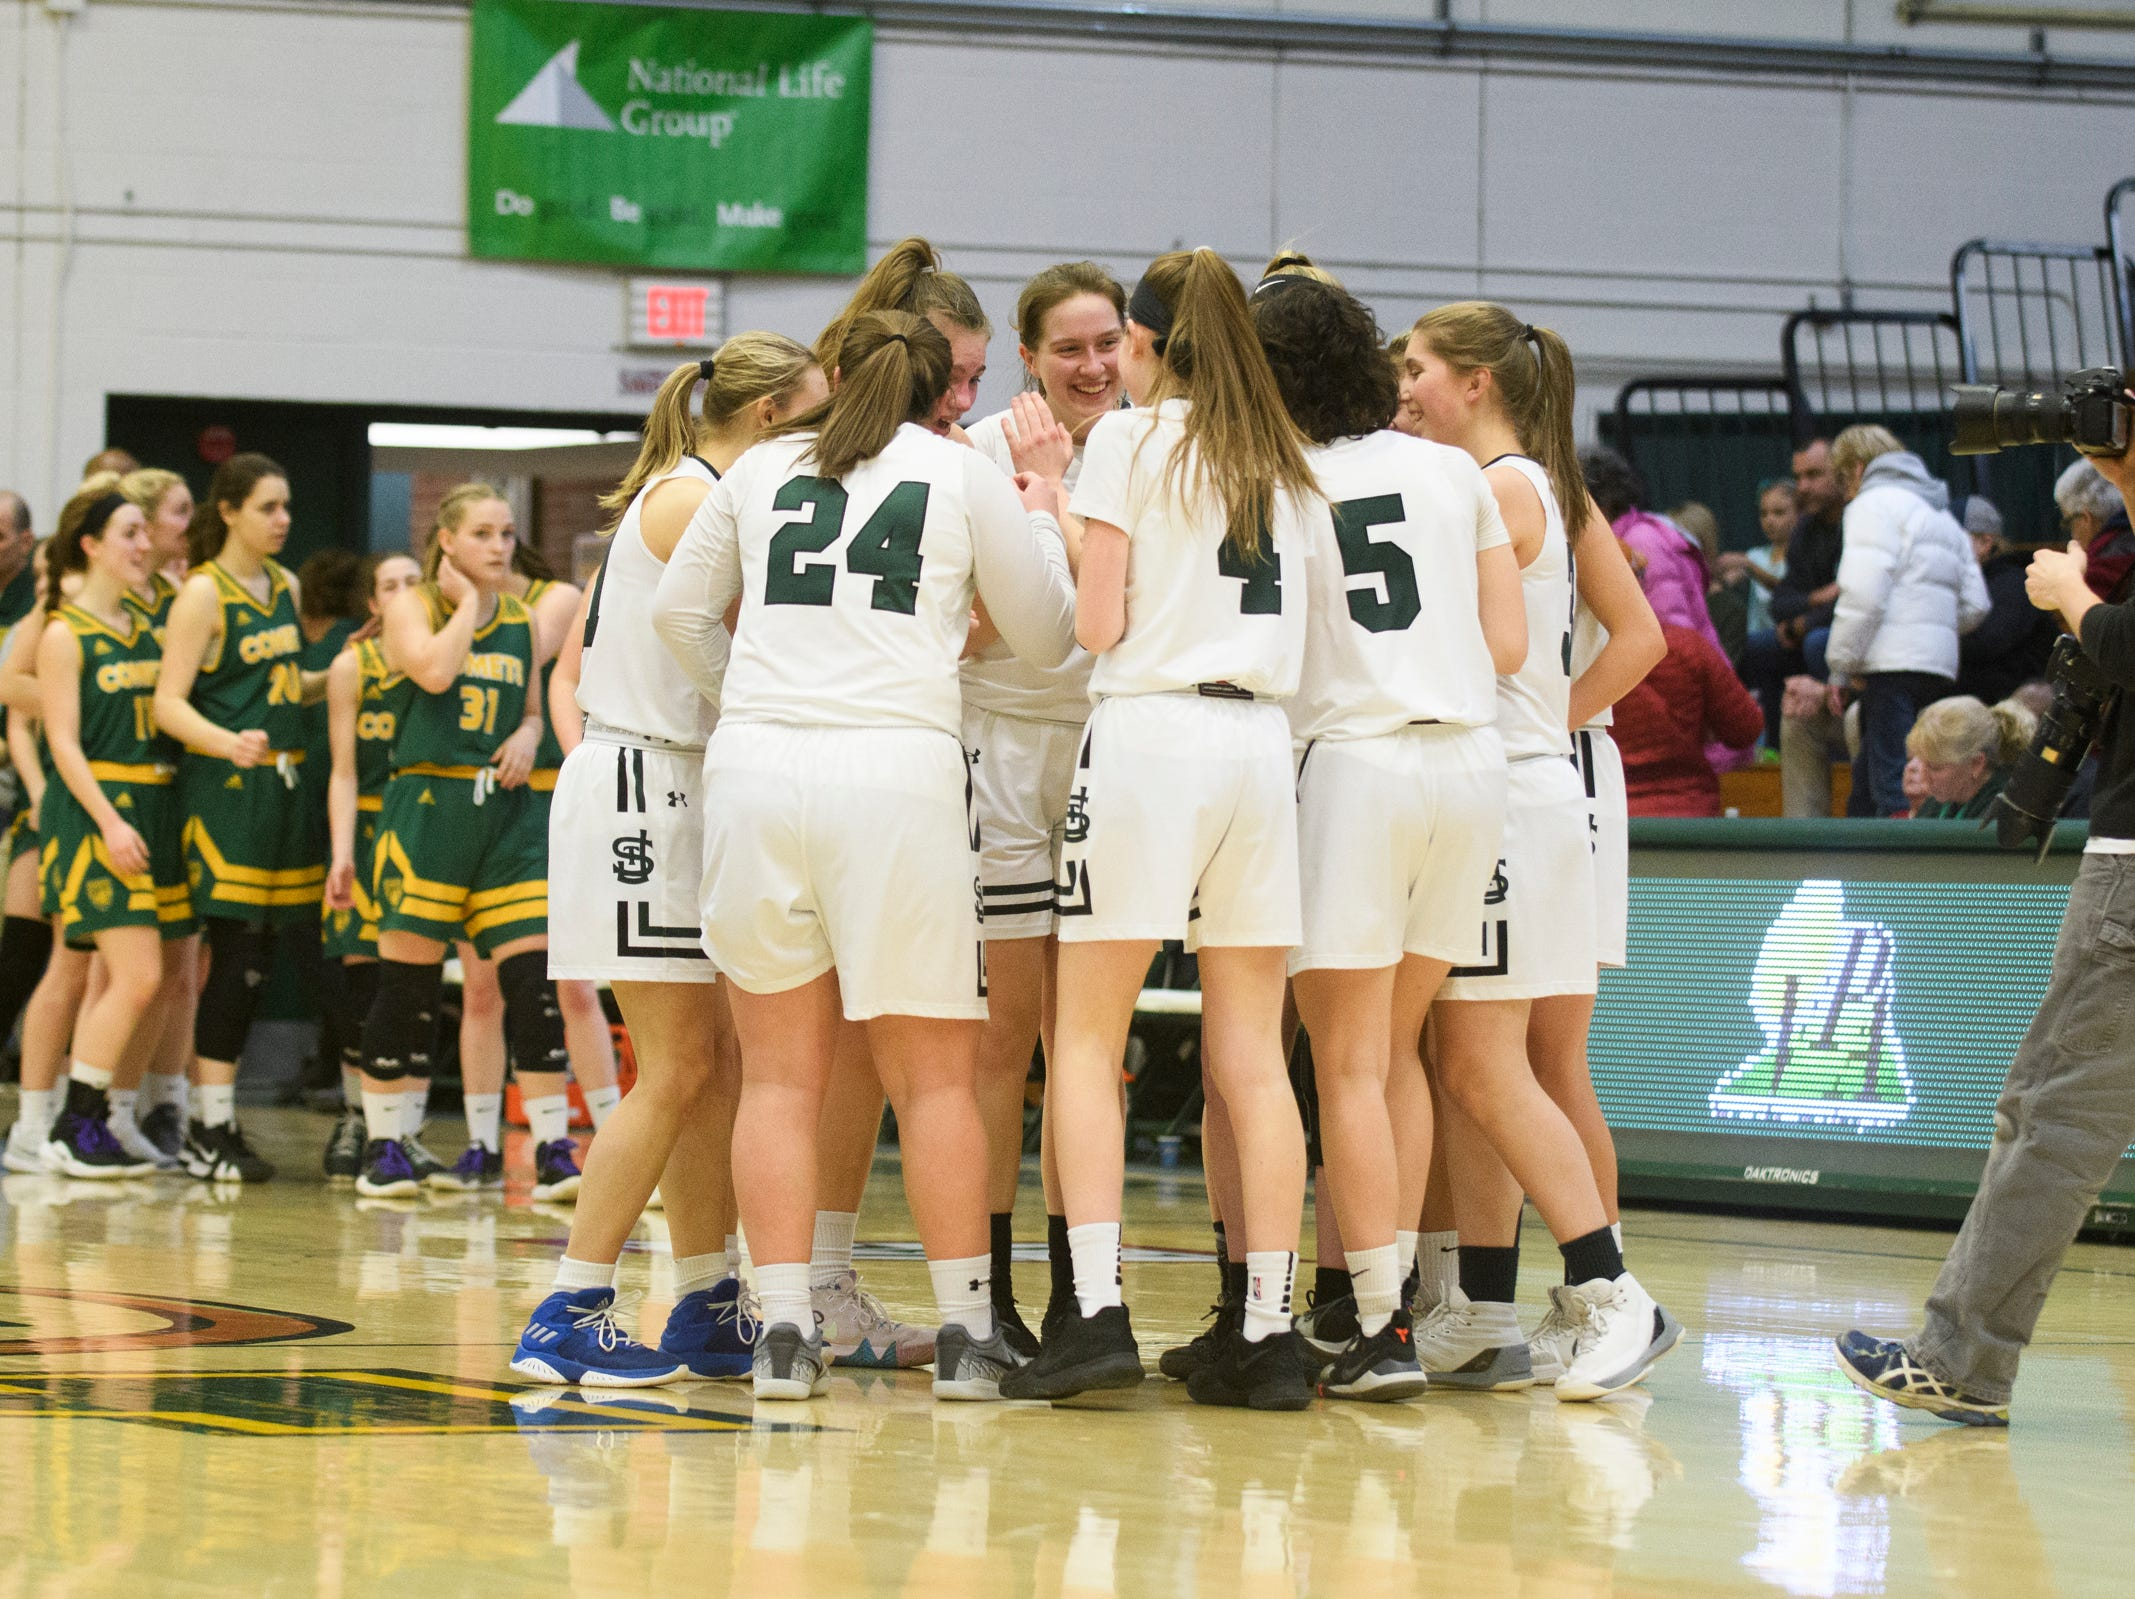 St. Johnsbury huddles together at the conclusion of the girls semifinal basketball game between the BFA St. Albans Comets and the St. Johnsbury Hilltoppers at Patrick Gym on Wednesday night March 6, 2019 in Burlington, Vermont.